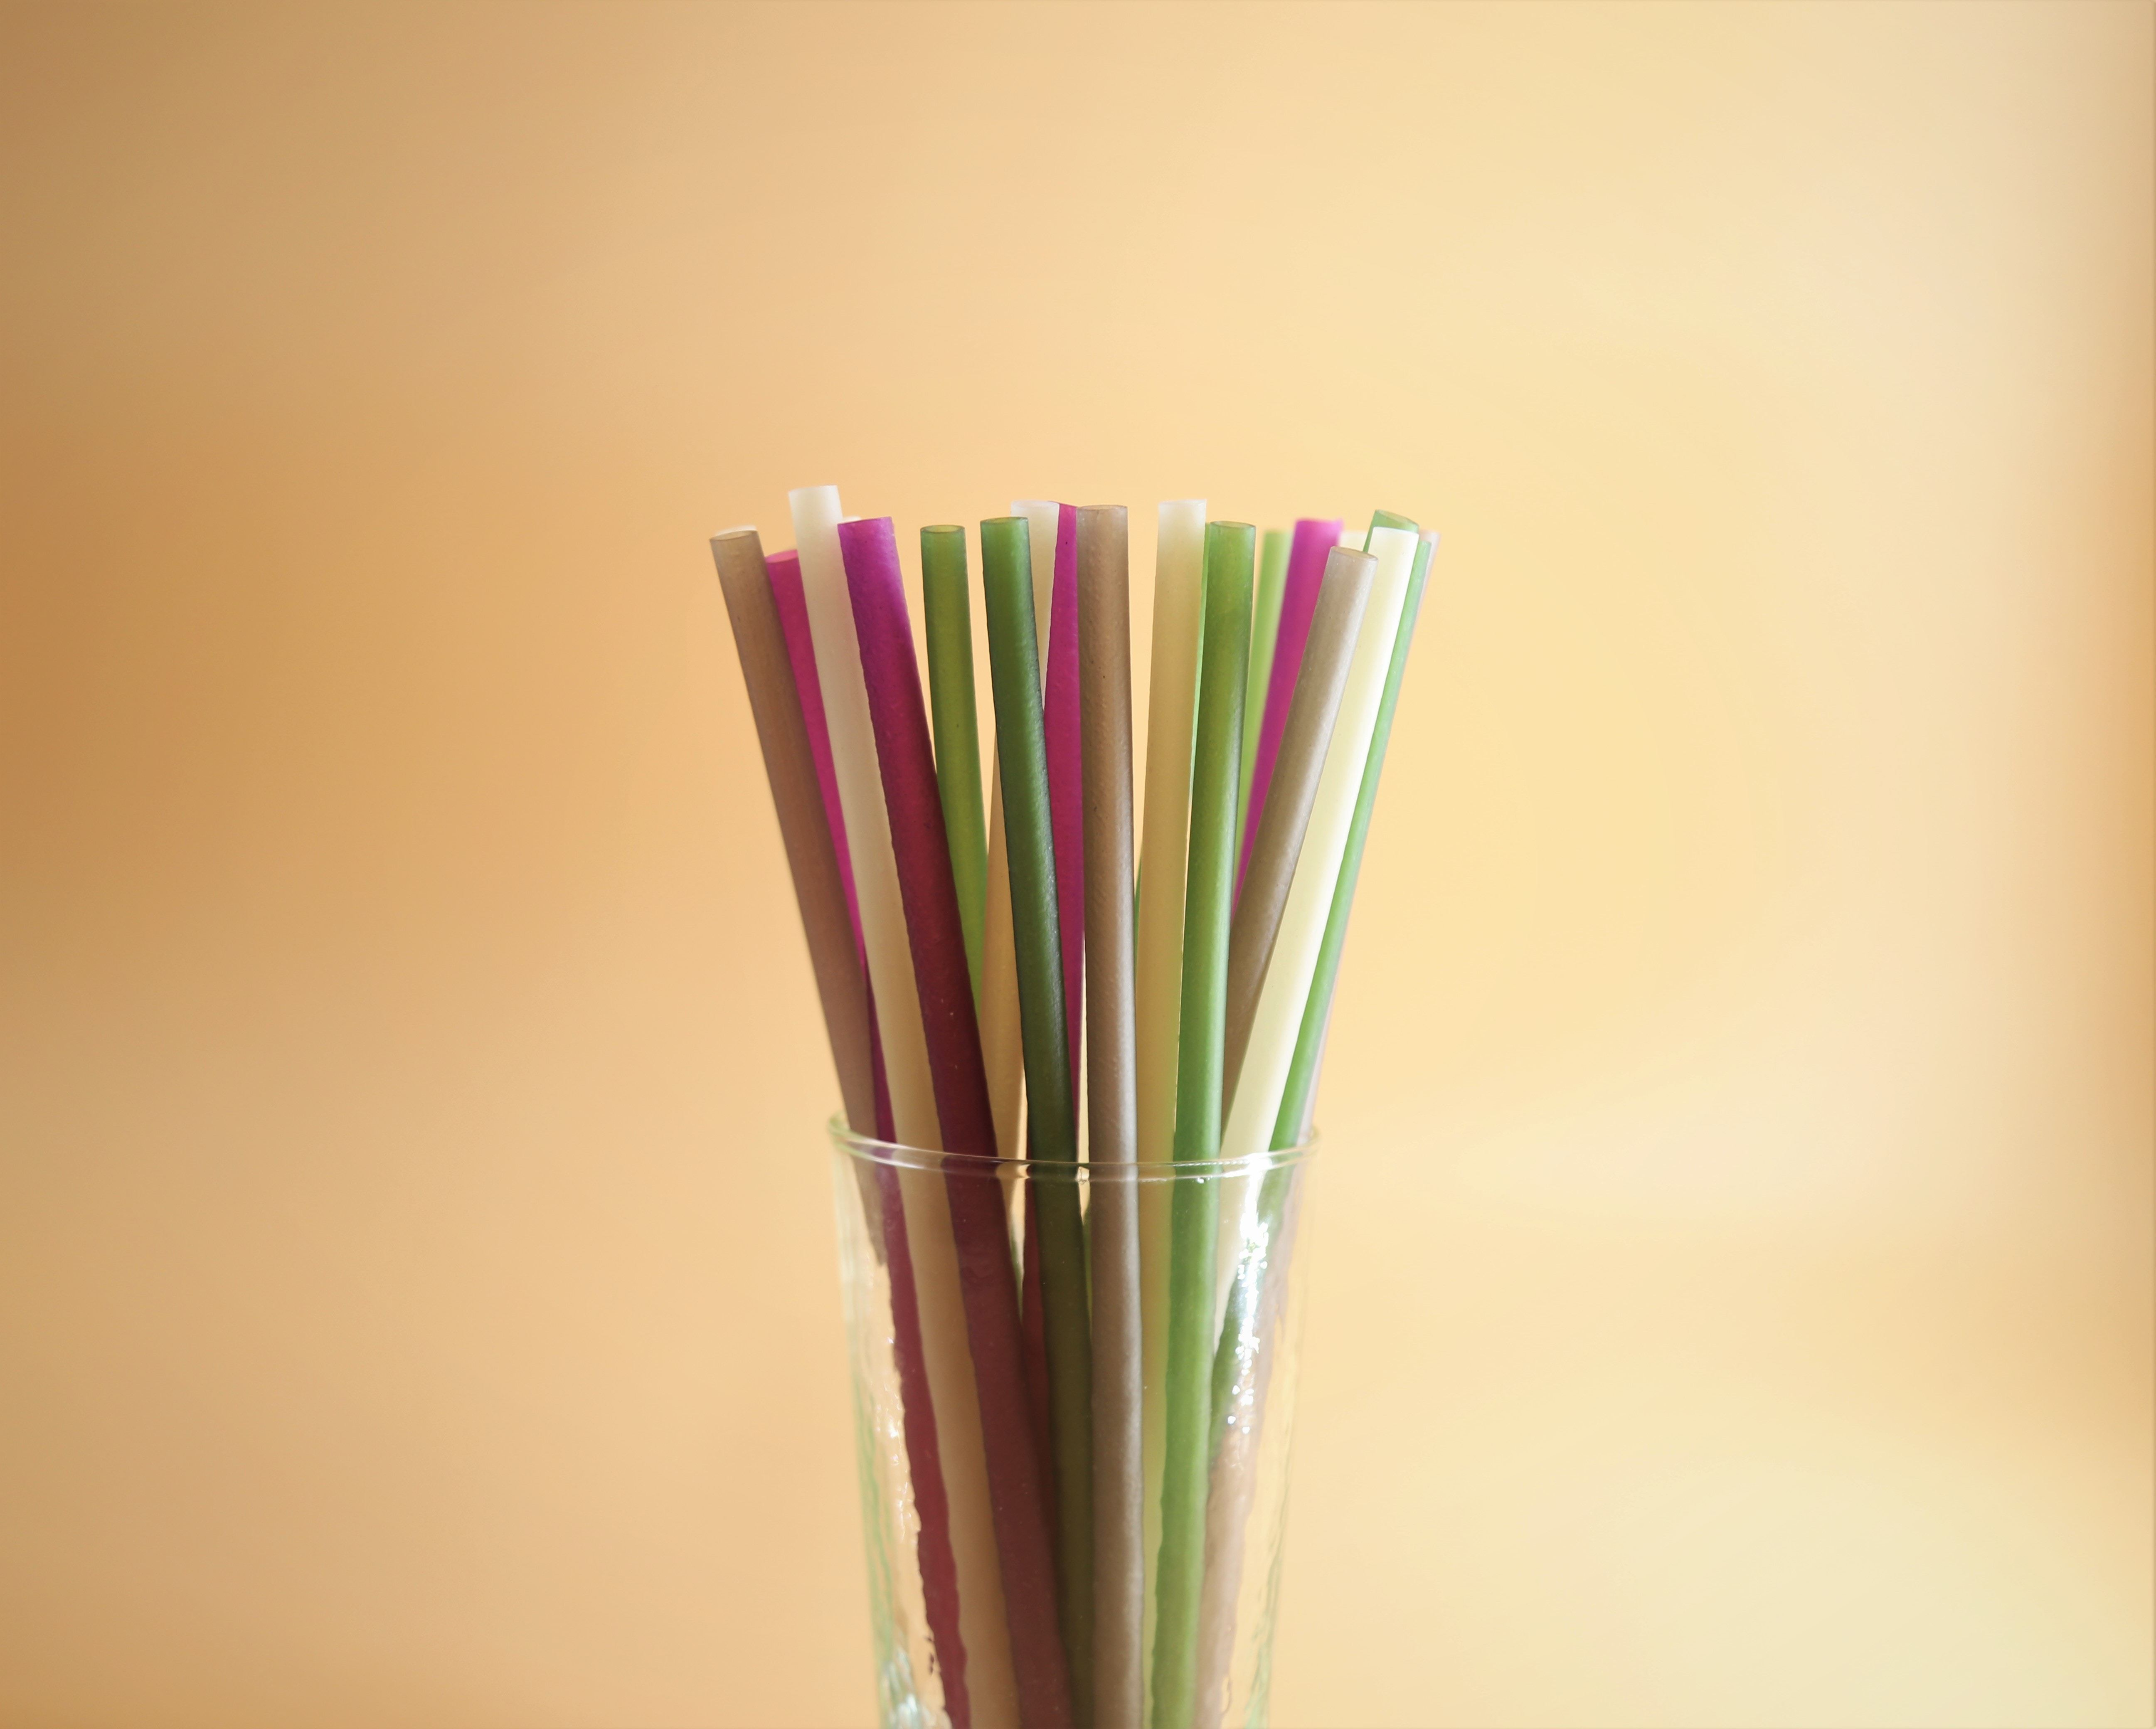 Colorful straws in a cup with a light yellow background